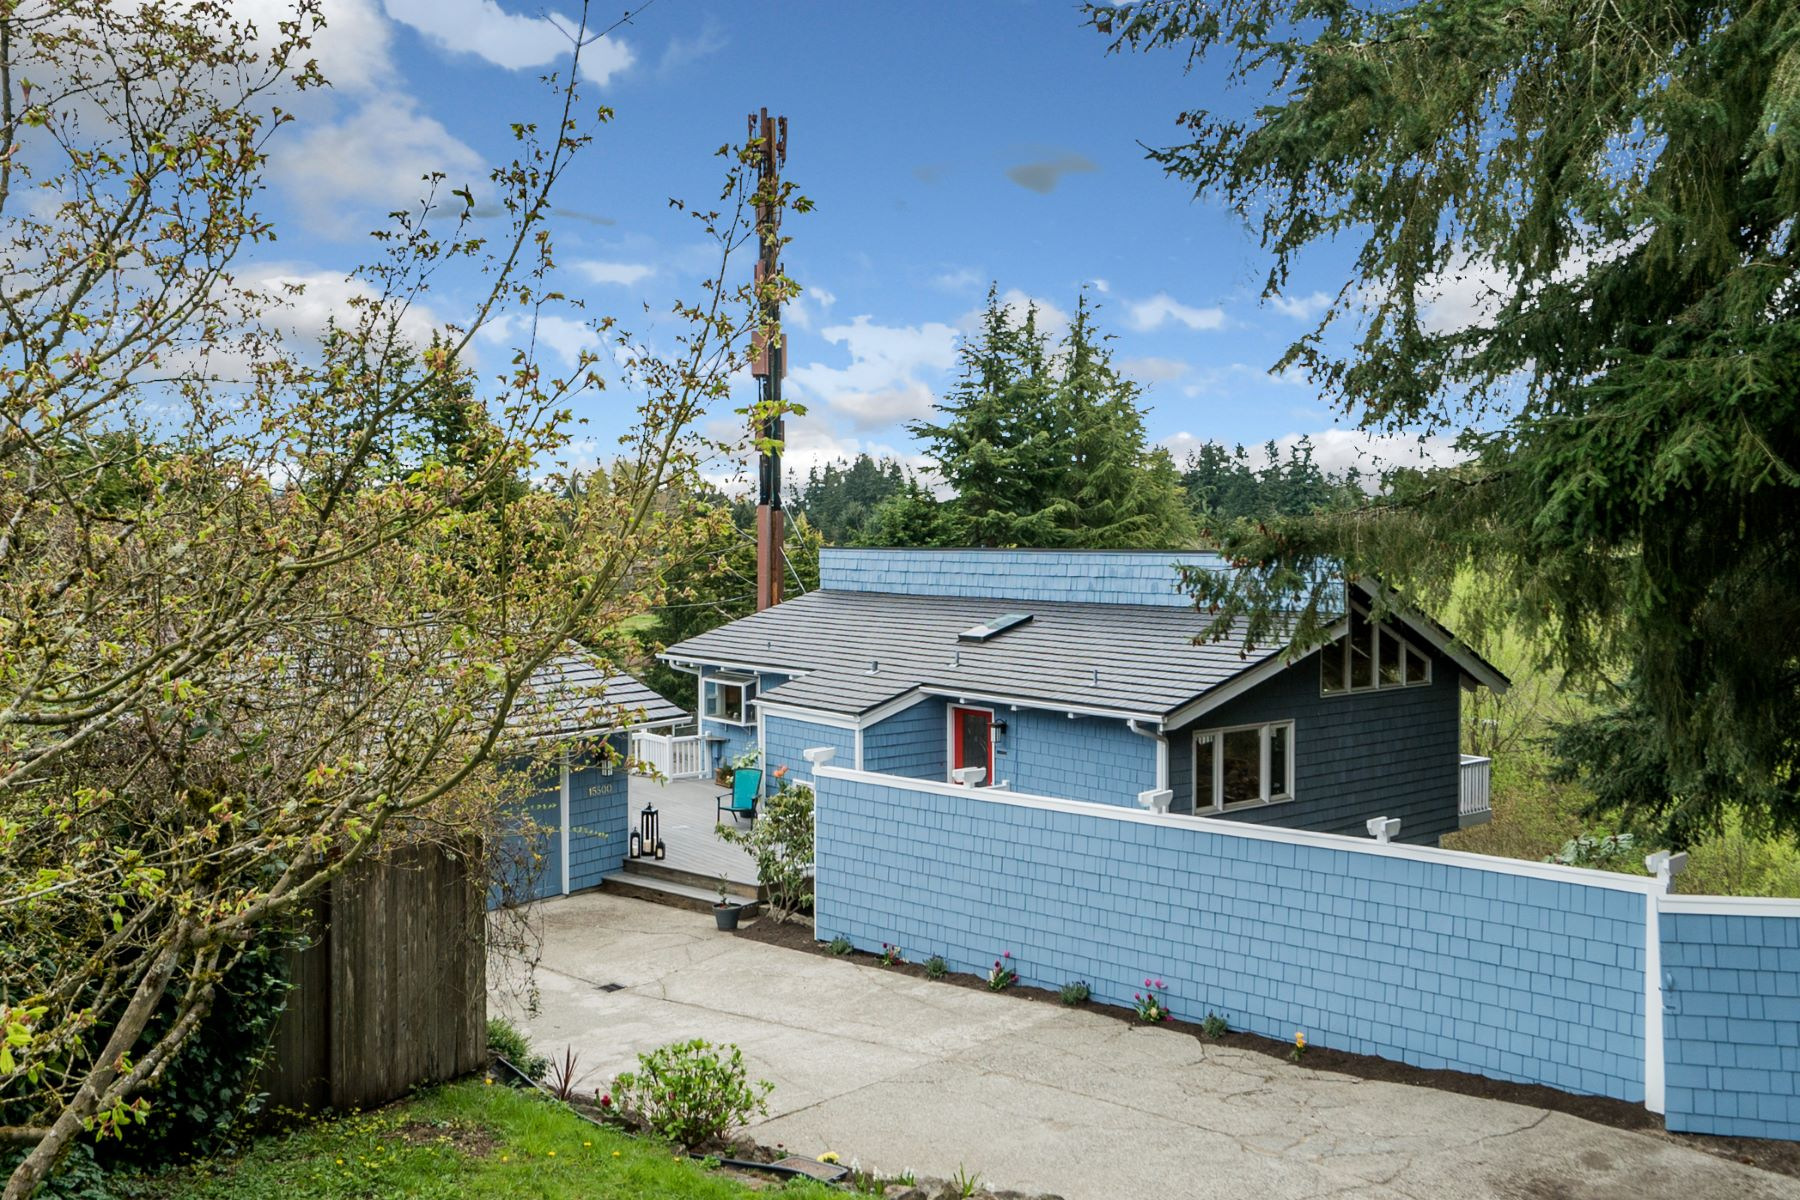 Single Family Home for Sale at Hidden Gem in Phantom Lake 15500 SE 17th St Bellevue, Washington, 98007 United States